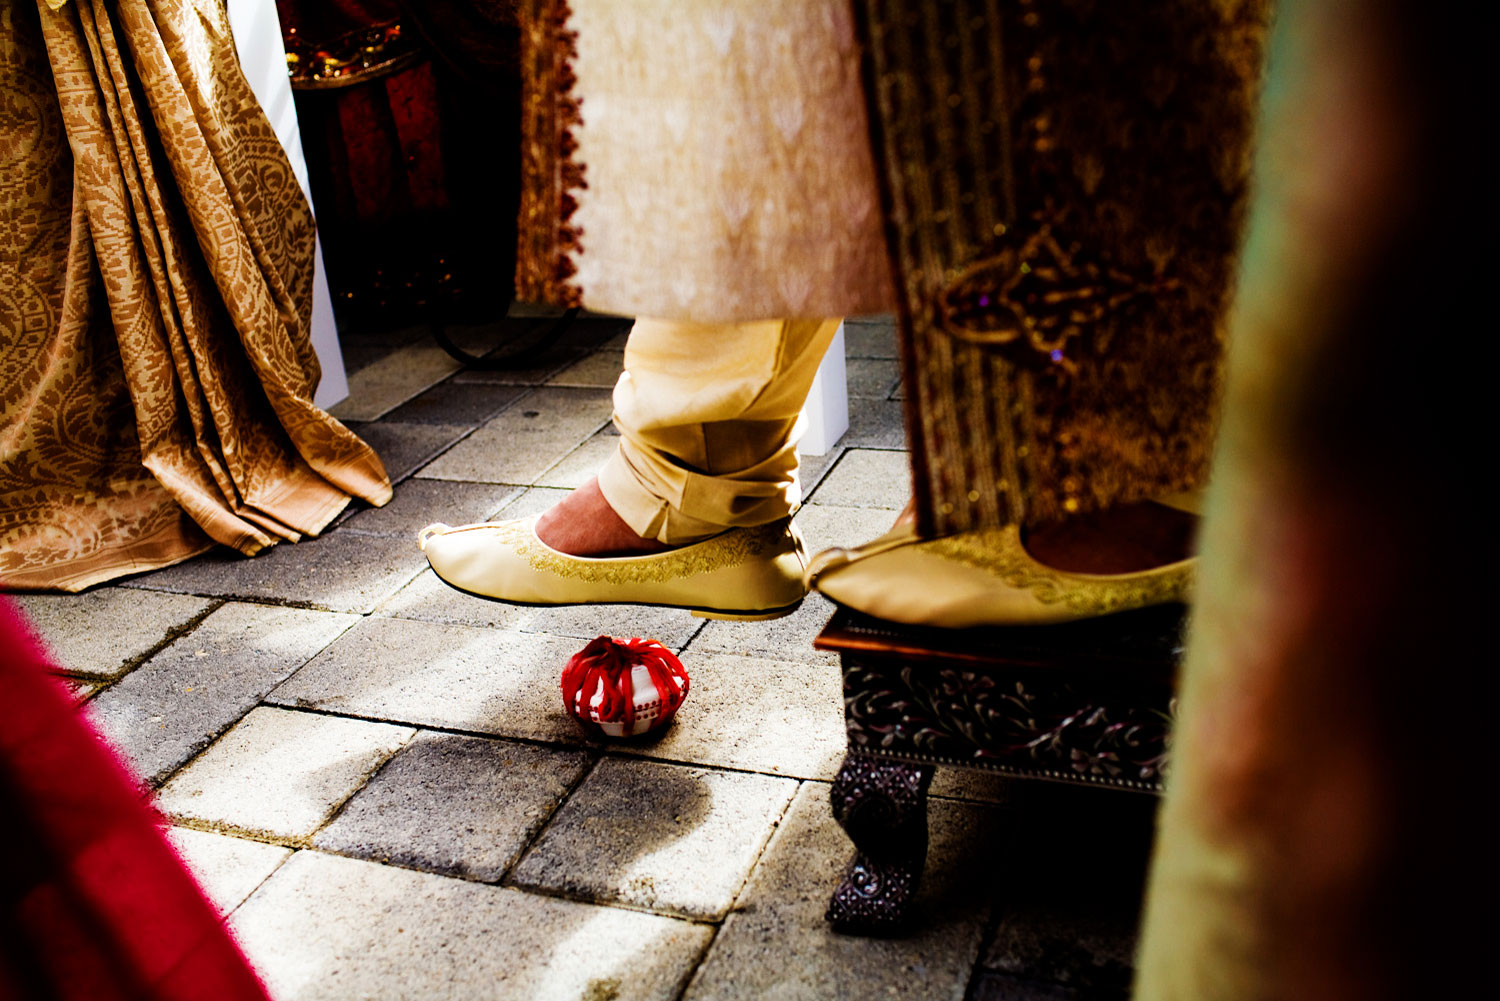 Detail image during an indian wedding ceremony in the Oakland, California.